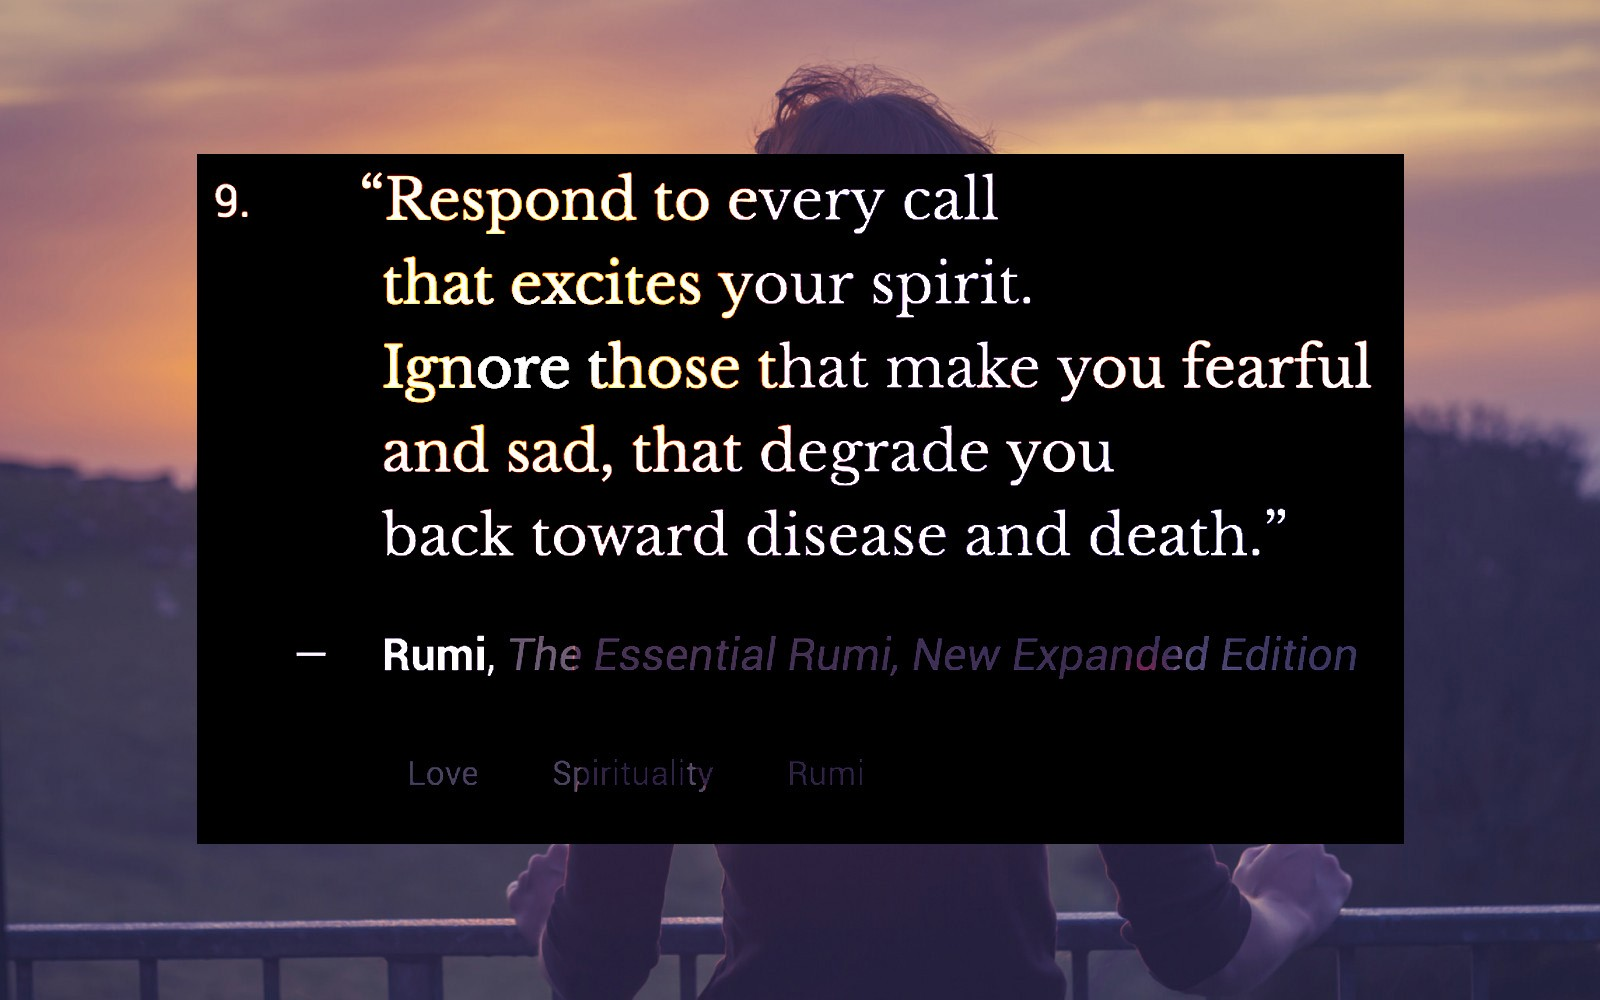 50 Inspirational Rumi Quotes That Will Enlighten Your Mind, Heart And Soul